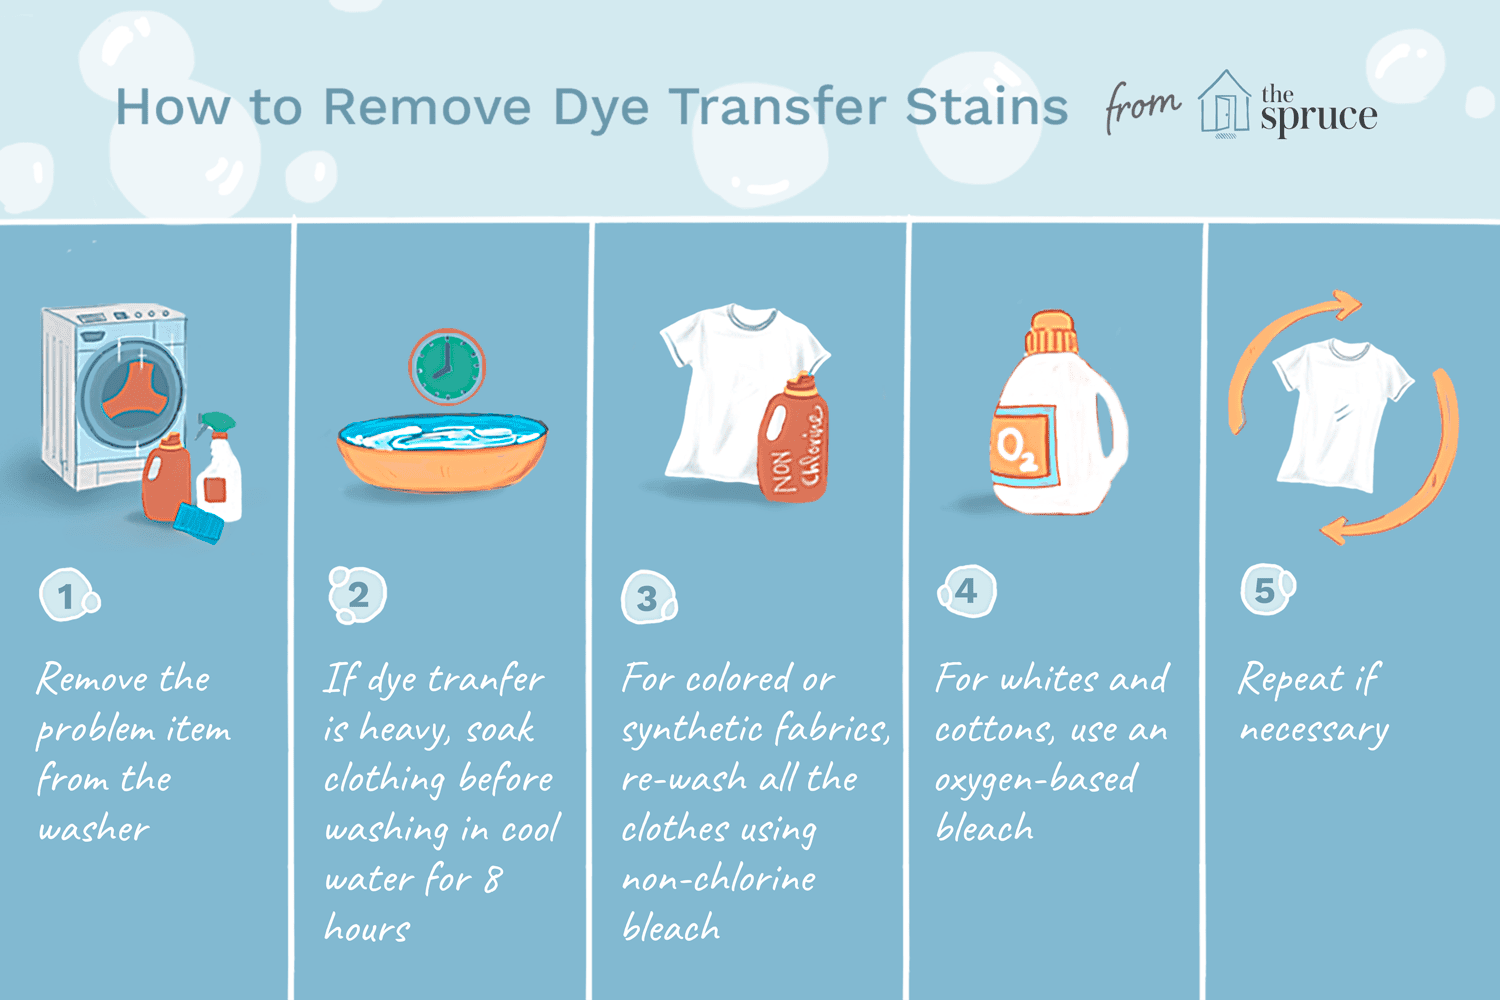 How To Remove Dye Stains From Clothes And Upholstery